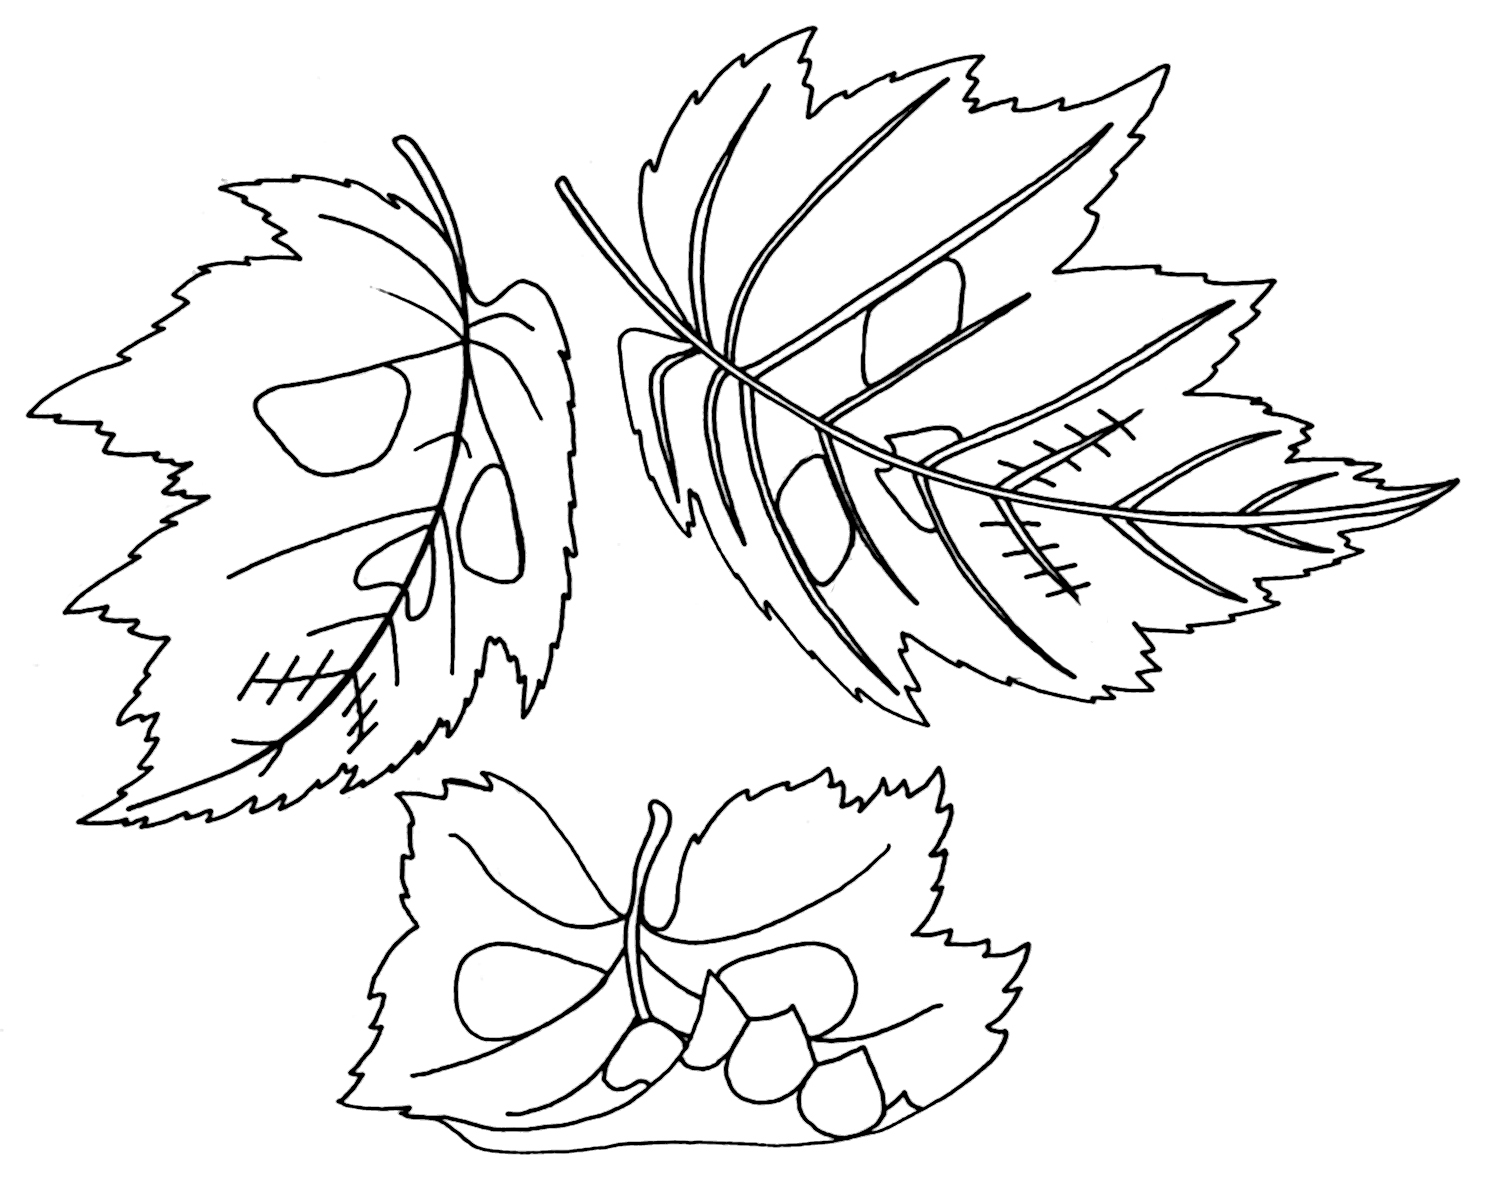 Yucca Flats, N.M.: Wenchkin\'s Coloring Pages - Falling Leaves